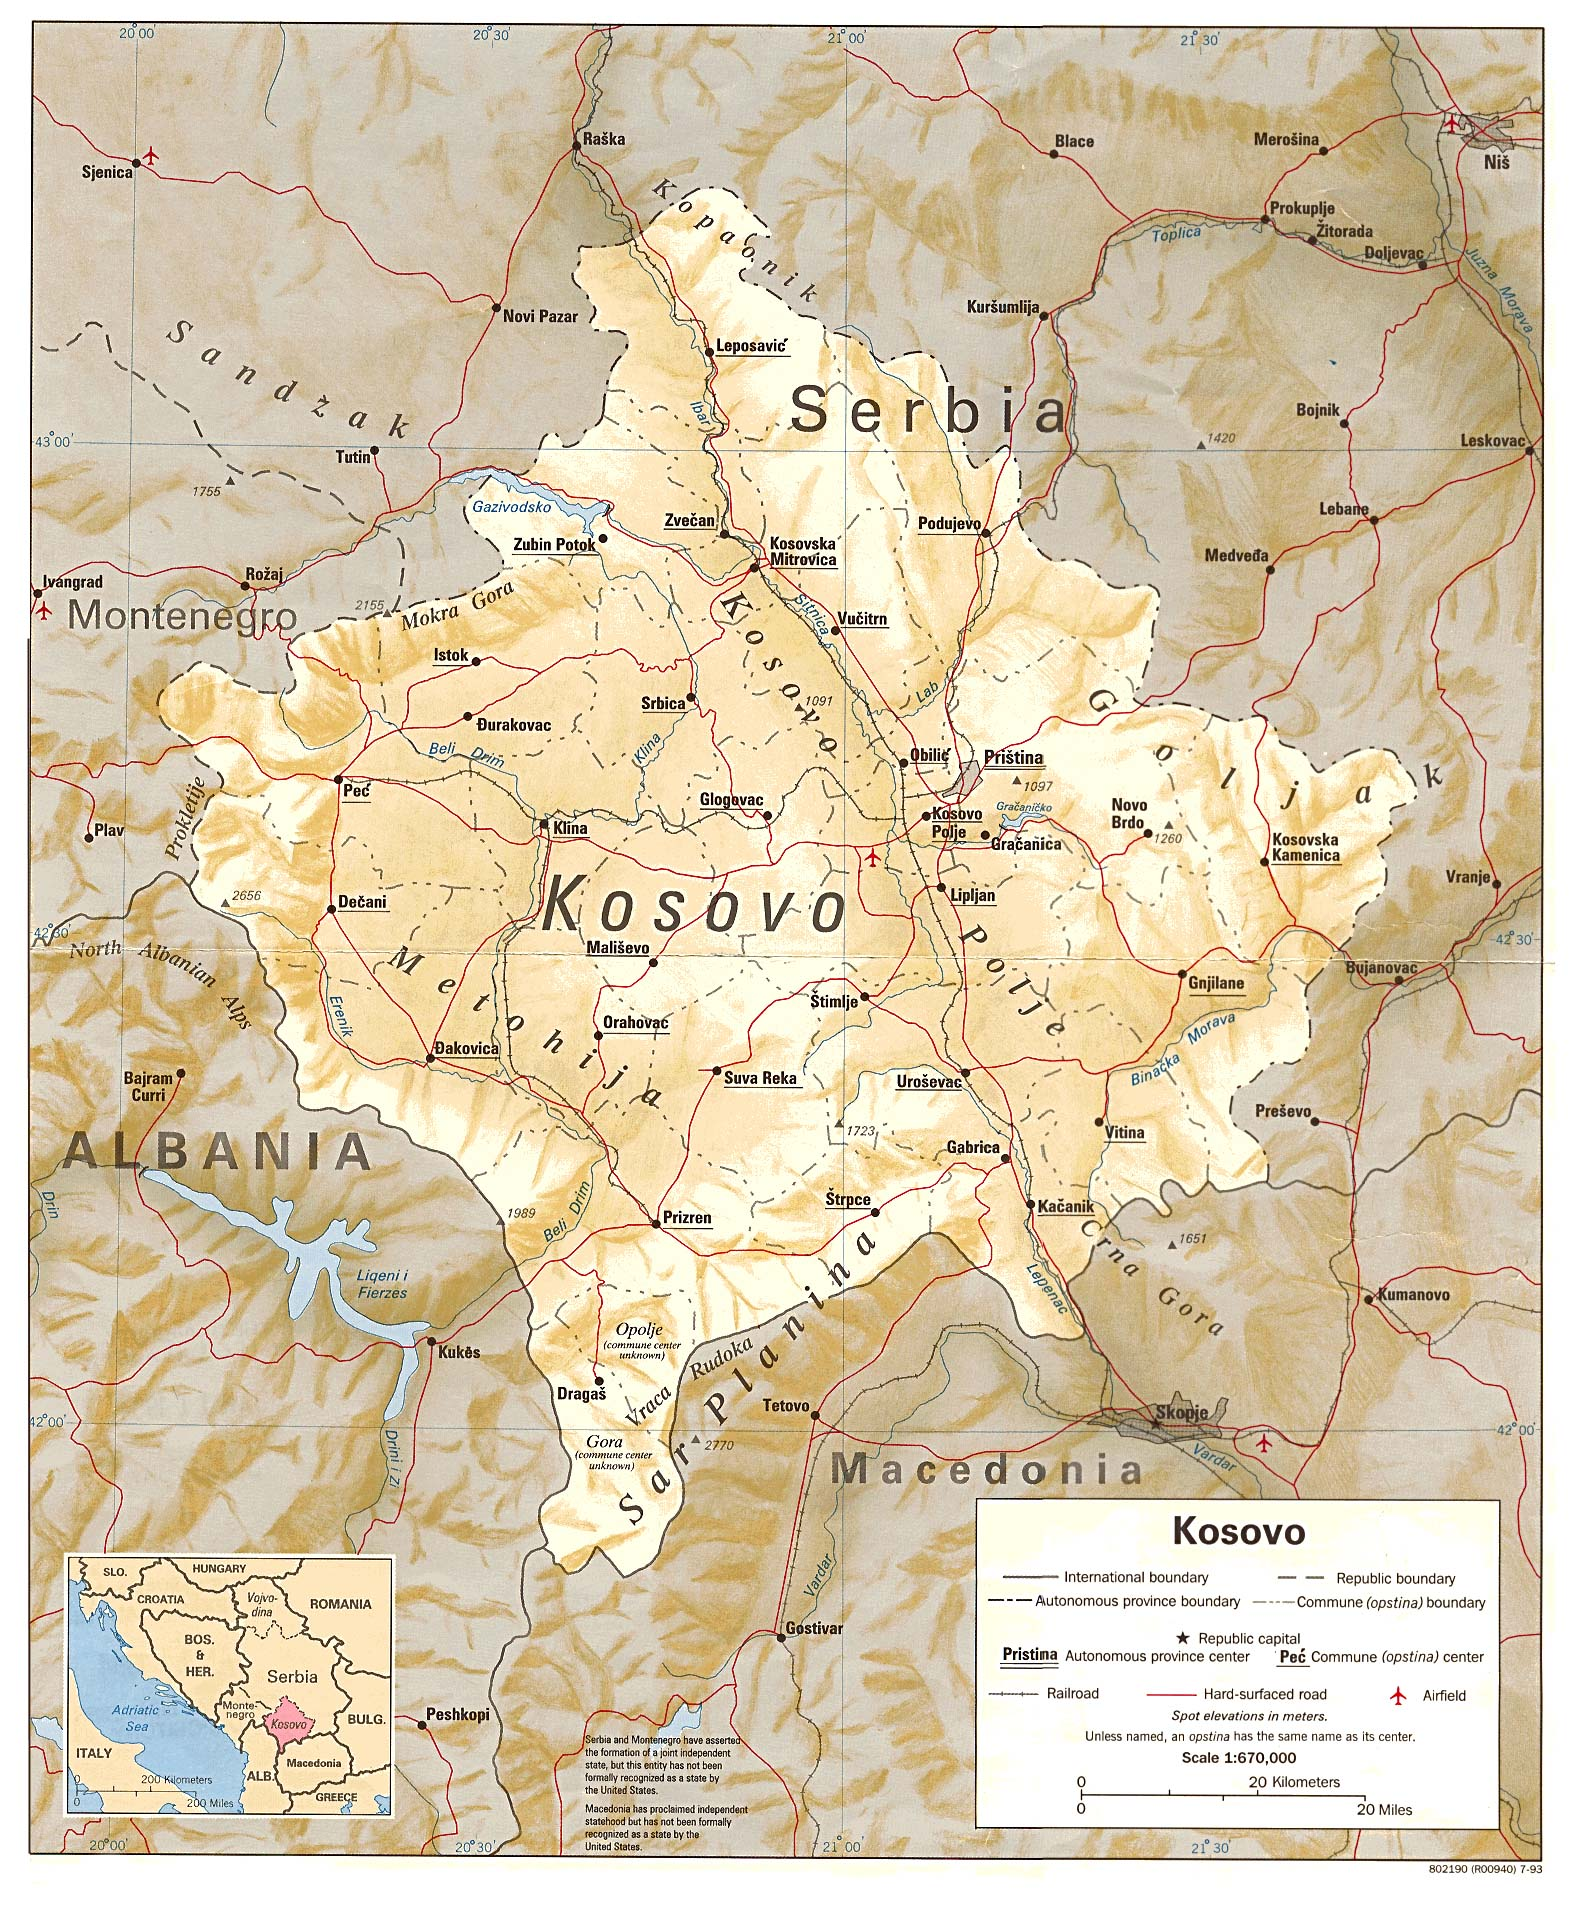 Kosovo Maps - Perry-Castañeda Map Collection - UT Liry Online on map of senegal, map of macedonia, map of bulgaria, map of benin, map of united states, map of slovenia, map of european countries, map of malta, map of latvia, map of guam, map of puerto rico, map of australia, map of yugoslavia, map of bosnia, map of laos, map of slovakia, map of india, map of alps, map of montenegro,